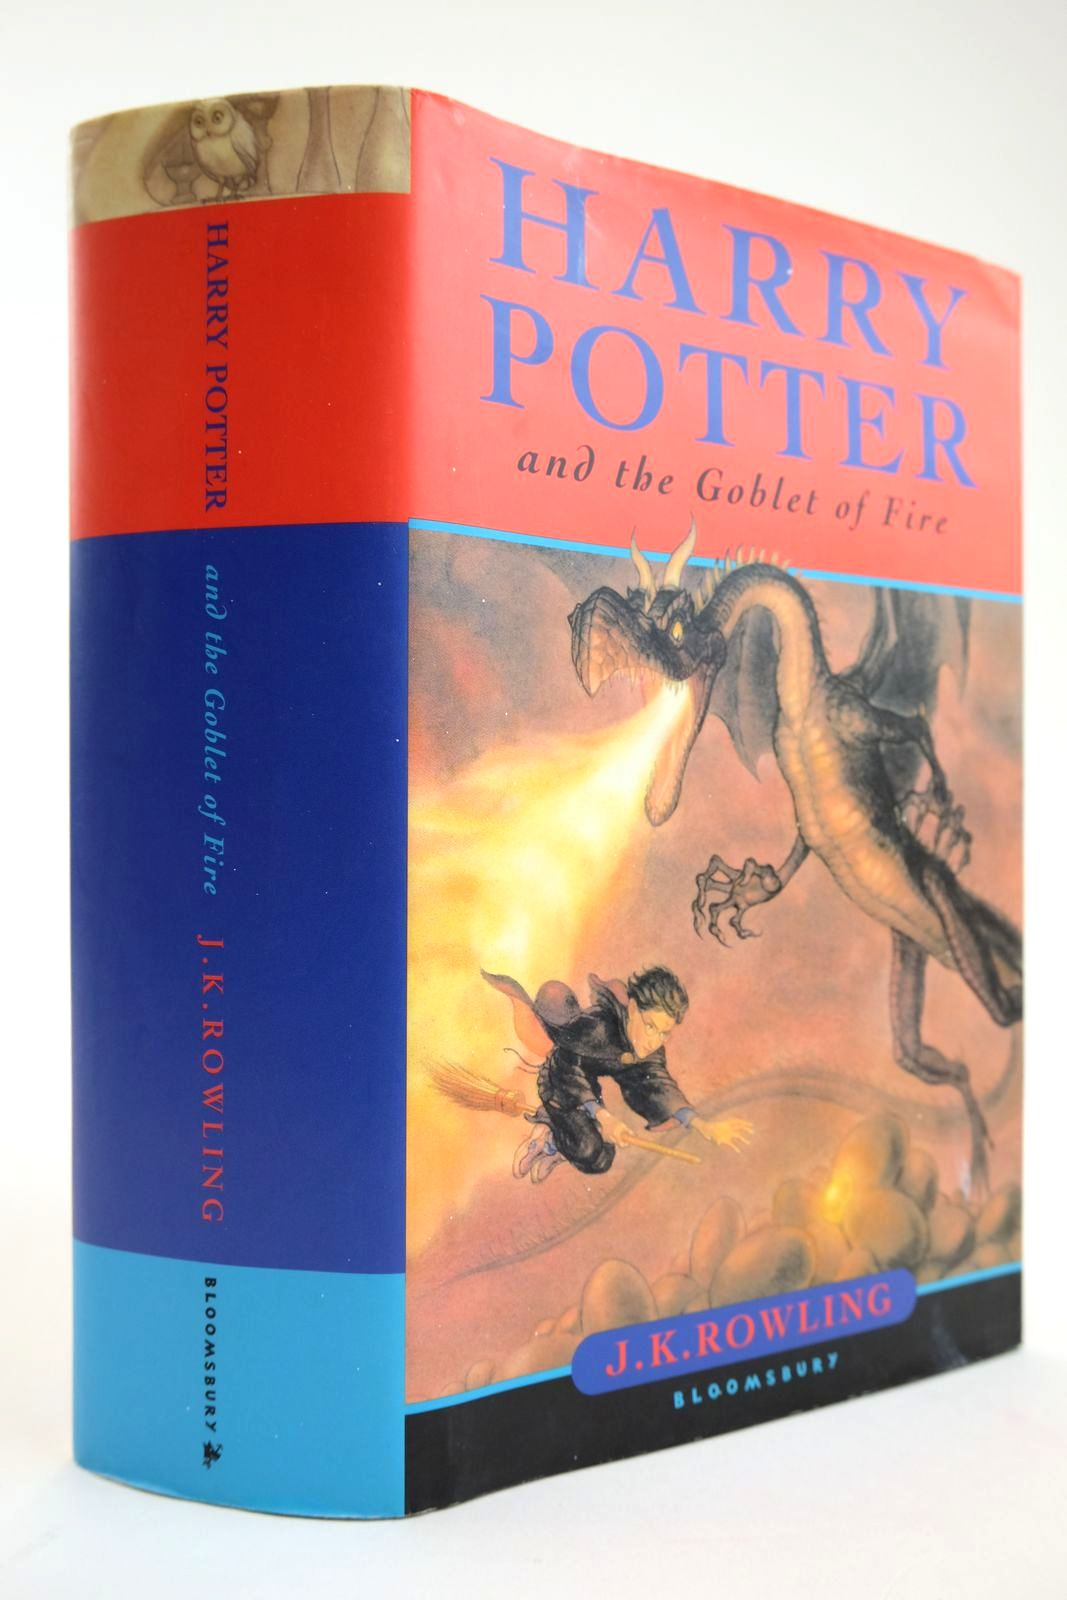 Photo of HARRY POTTER AND THE GOBLET OF FIRE written by Rowling, J.K. published by Bloomsbury (STOCK CODE: 2133538)  for sale by Stella & Rose's Books